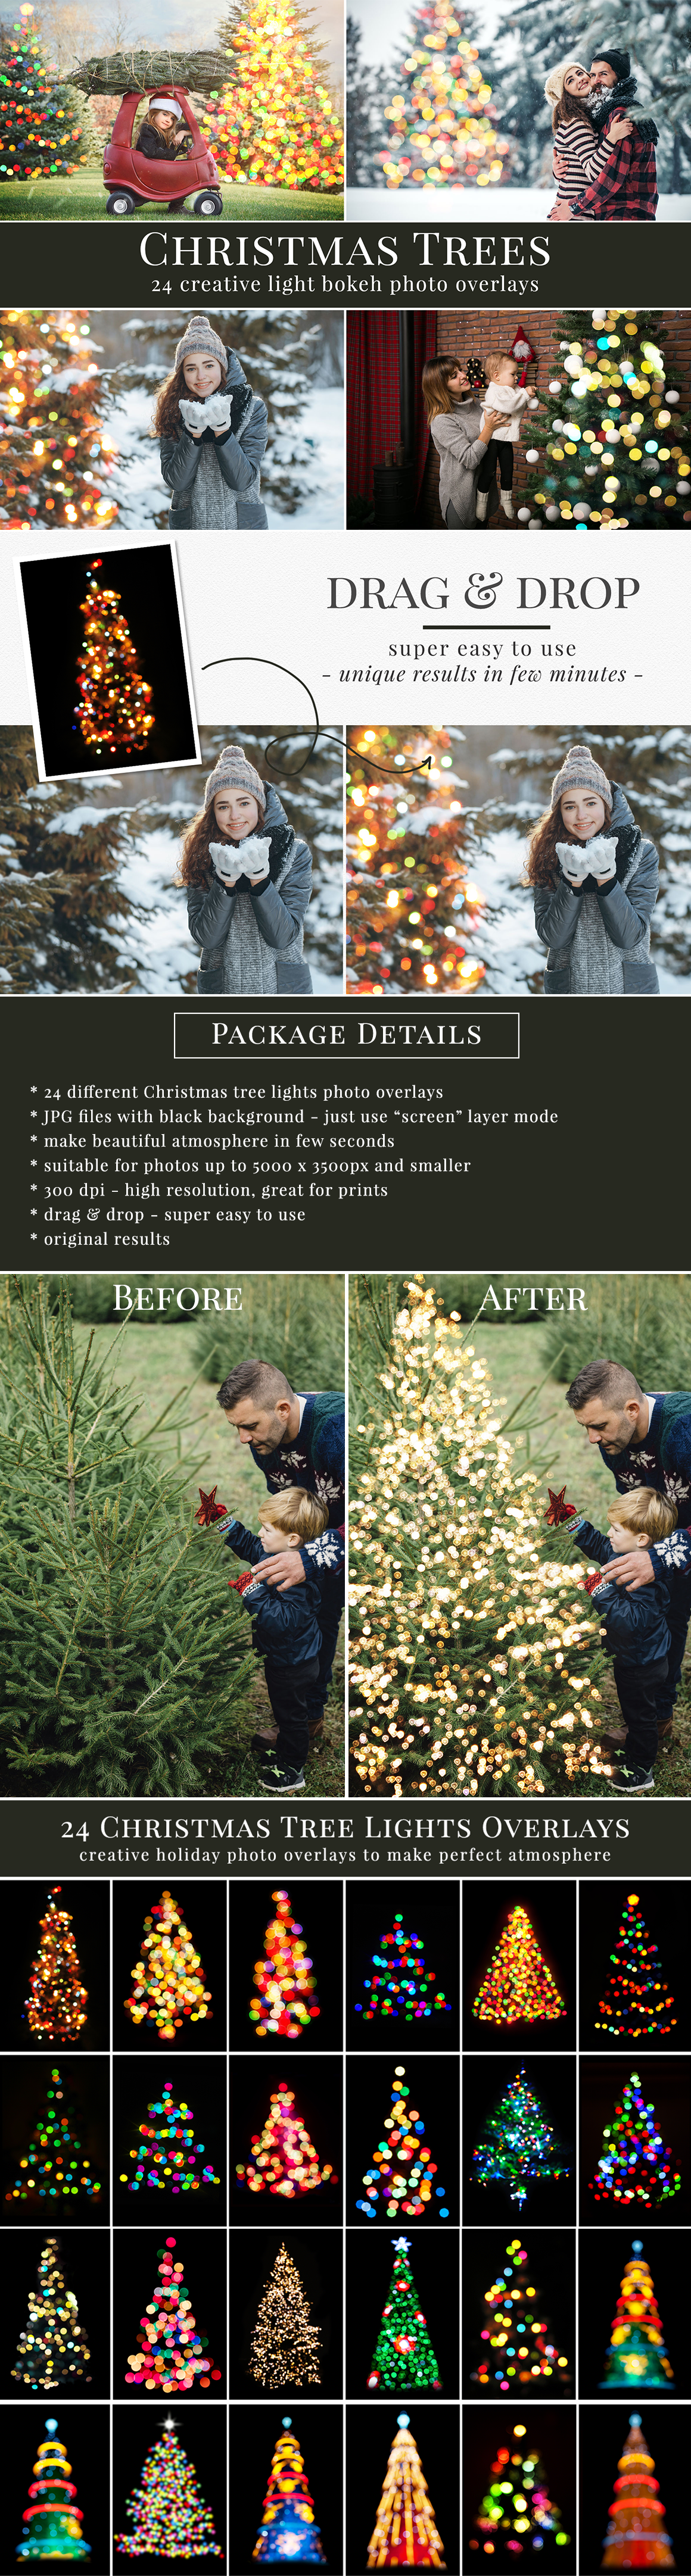 Creative Christmas photo overlays, holiday bokeh photo overlays - all you need to style amazing festive atmosphere. Great for Christmas minis, kids portraits or family photography. Drag & drop - super easy to use, original result just in one minute. Professional photo overlays for Photoshop, Zoner, Gimp, PicMoneky, etc. Holiday photo overlays for creative photographers from Brown Leopard.